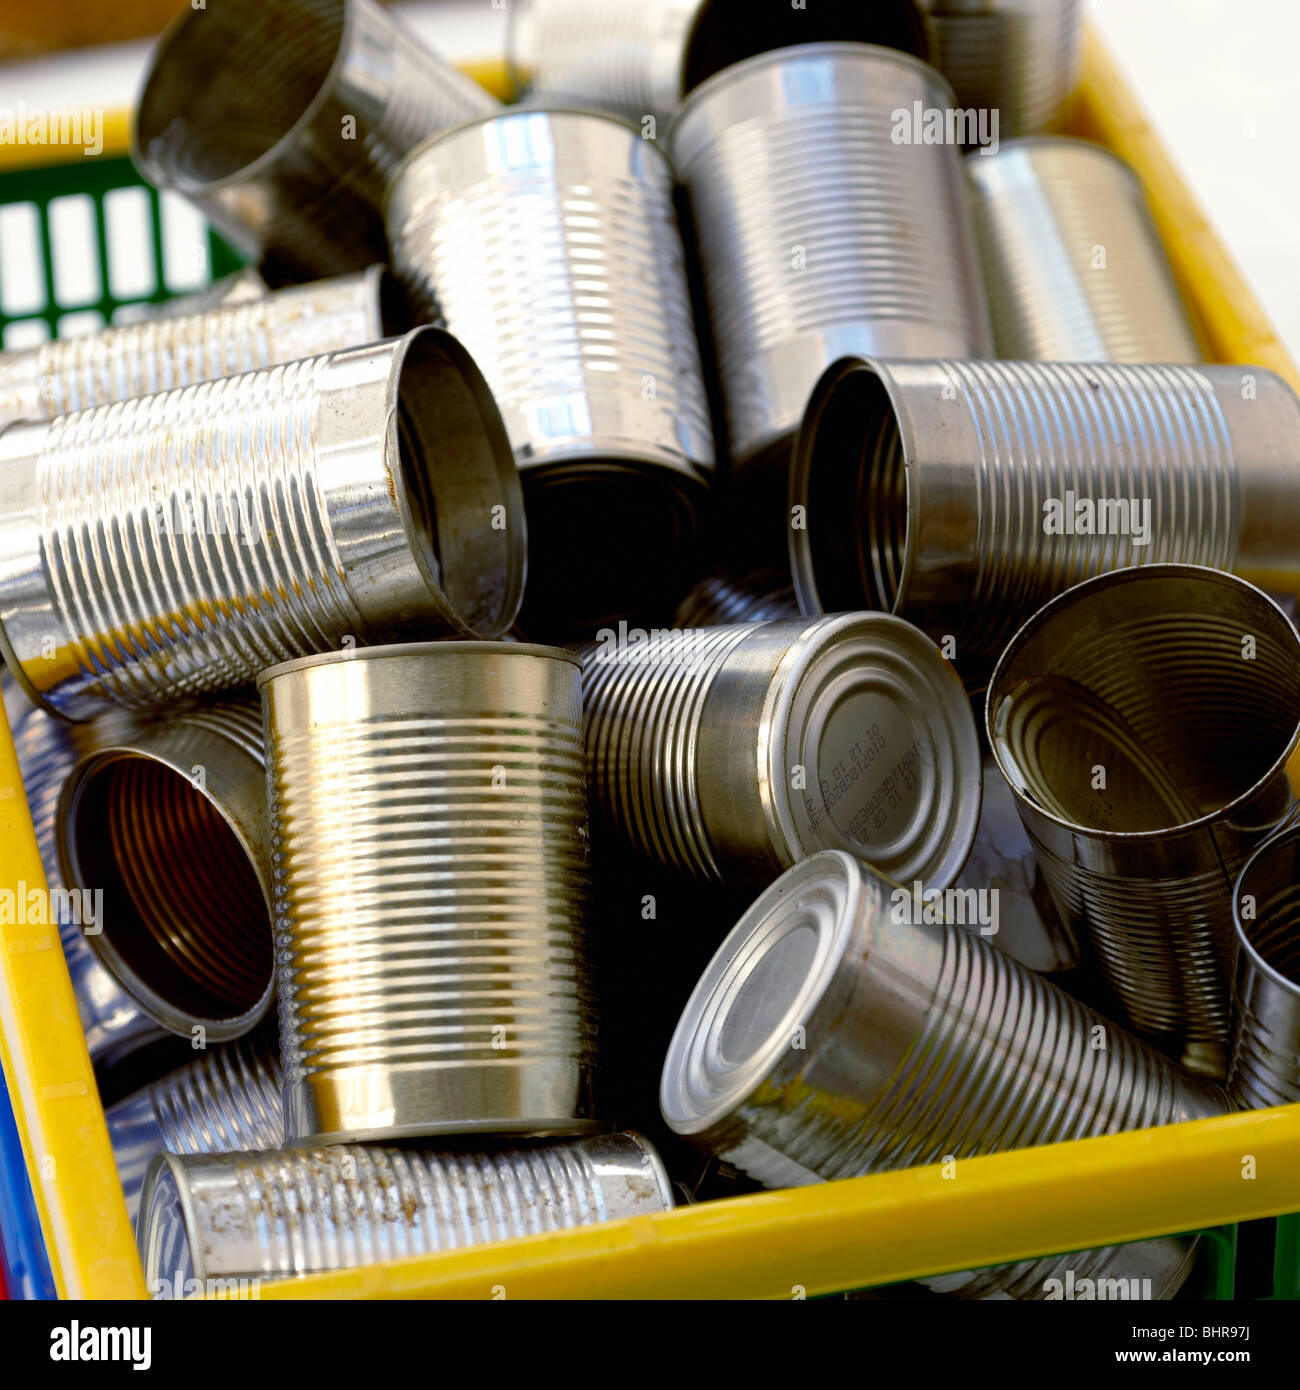 Tin cans in a recycling box - Stock Image